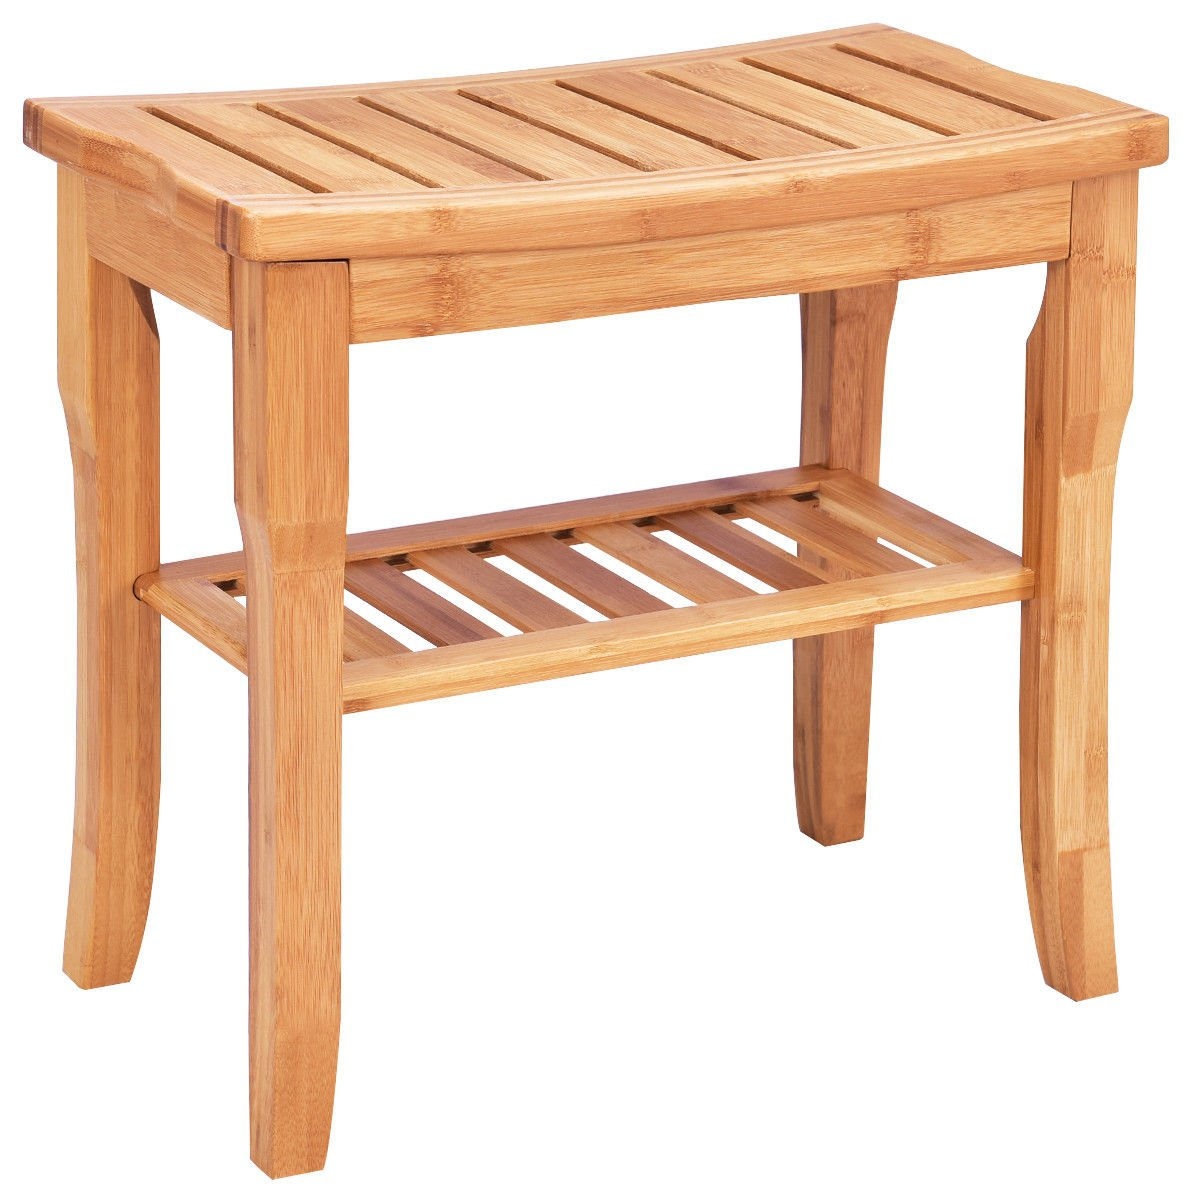 Giantex Bamboo Shower Seat Bench Bathroom Spa Bath Organizer Stool with Storage Shelf